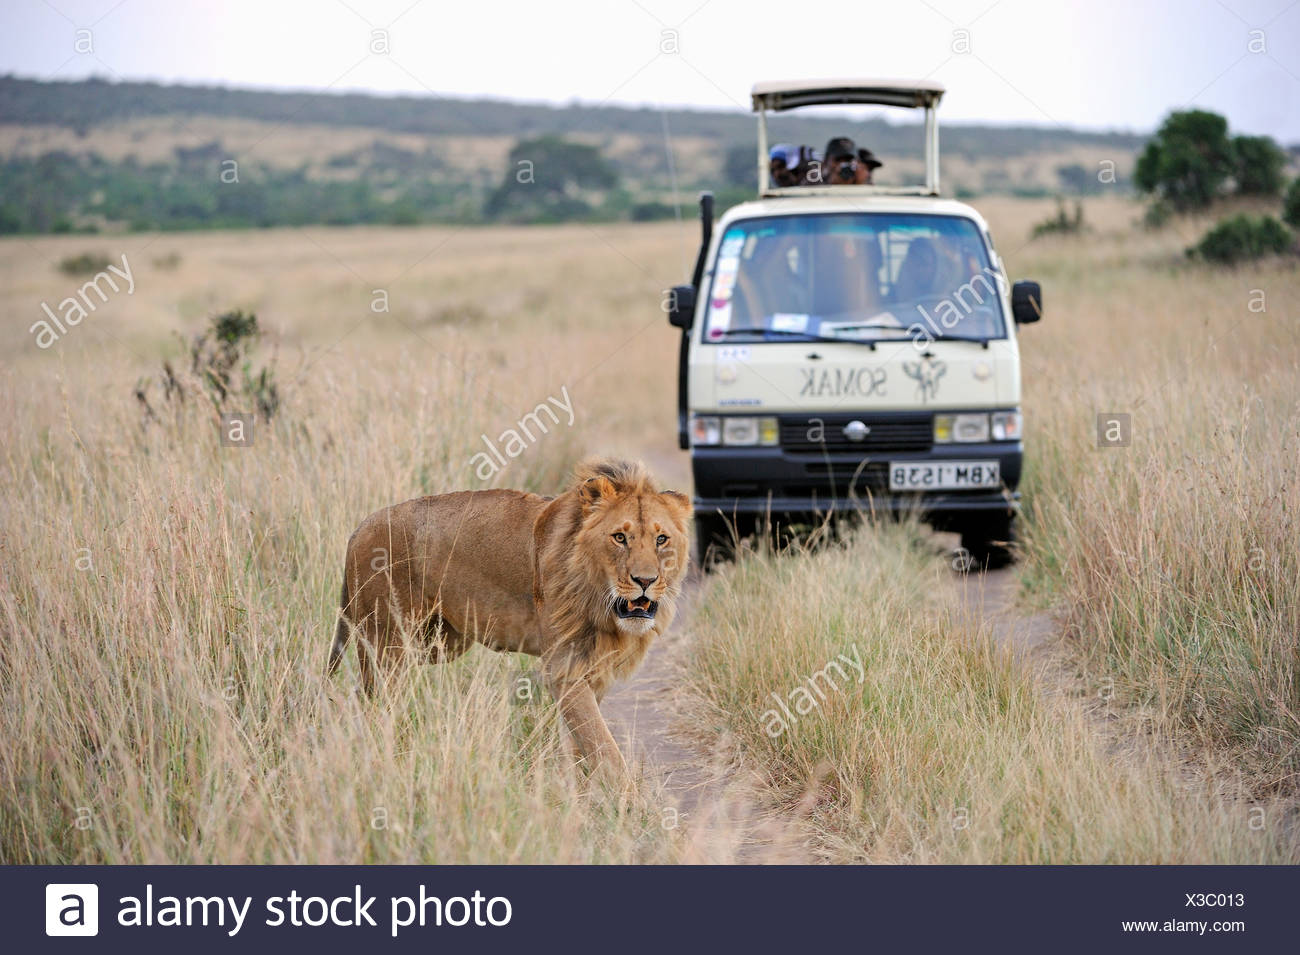 Lion (Panthera leo), male, in front of a safari vehicle, Masai Mara National Reserve, Kenya, East Africa, Africa - Stock Image